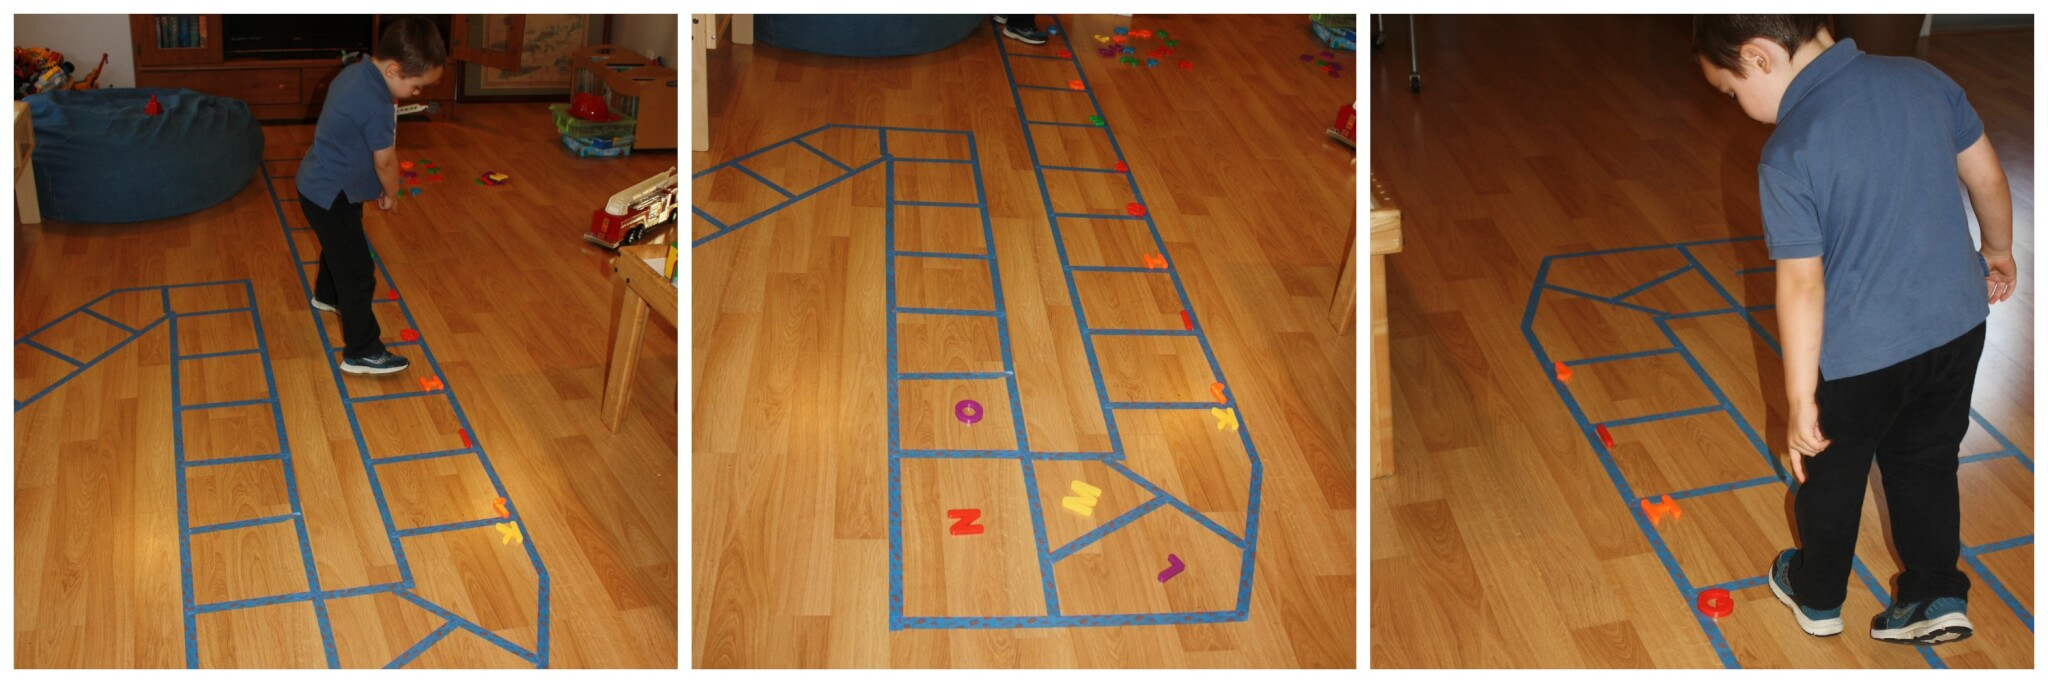 Fire Safety Game Fire Safety Walking The